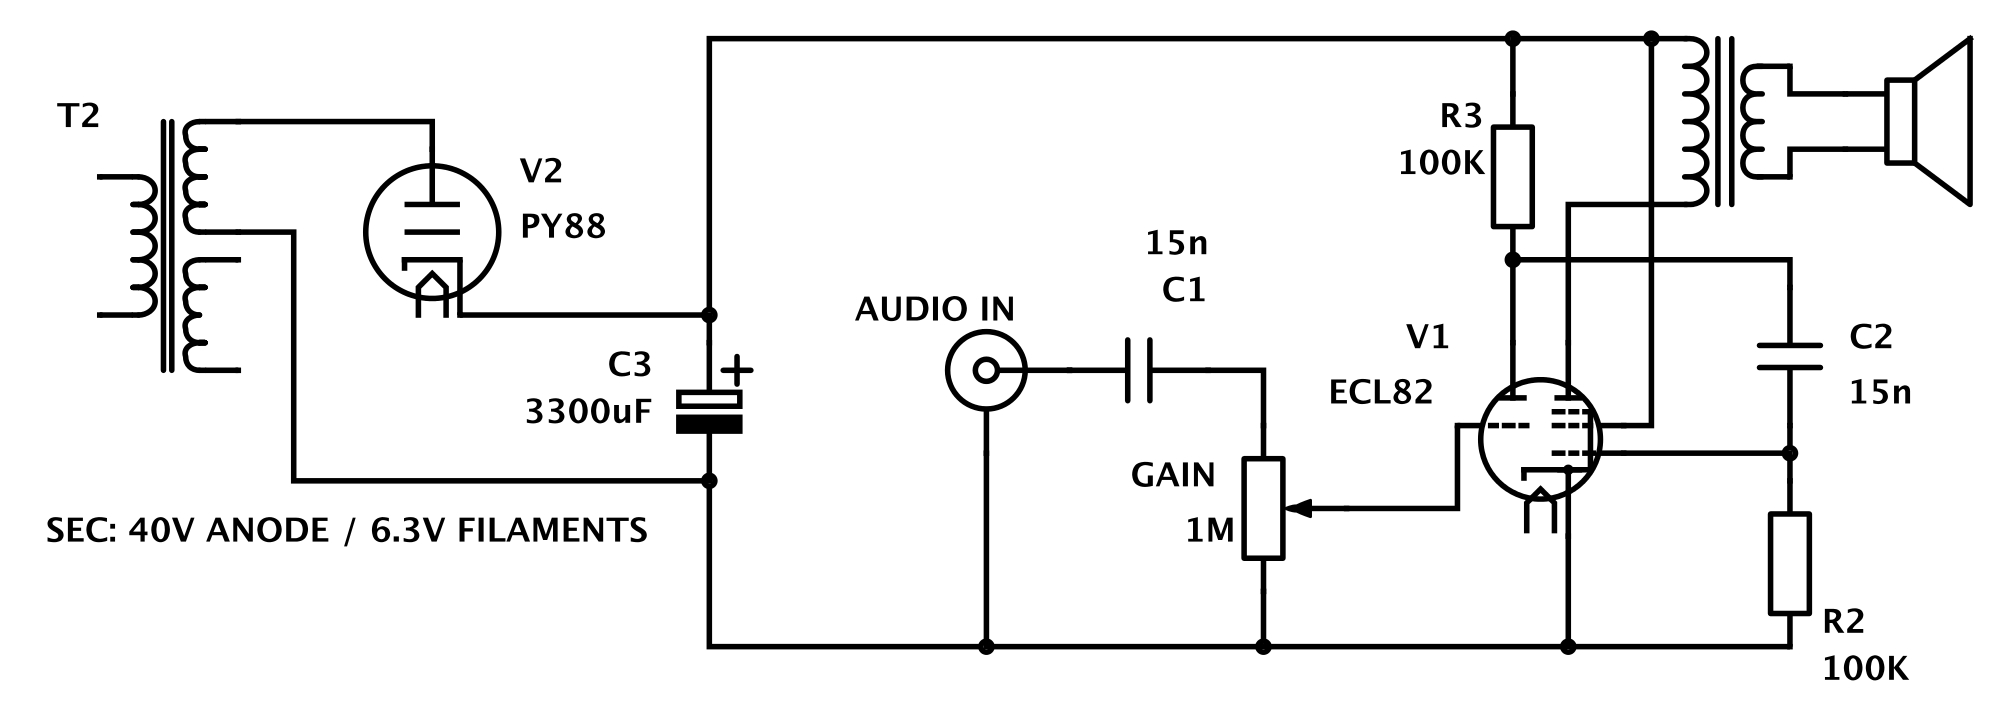 4949751414932586198 low voltage tube amp is great for beginners hackaday High-End Tube Amp Schematics at alyssarenee.co